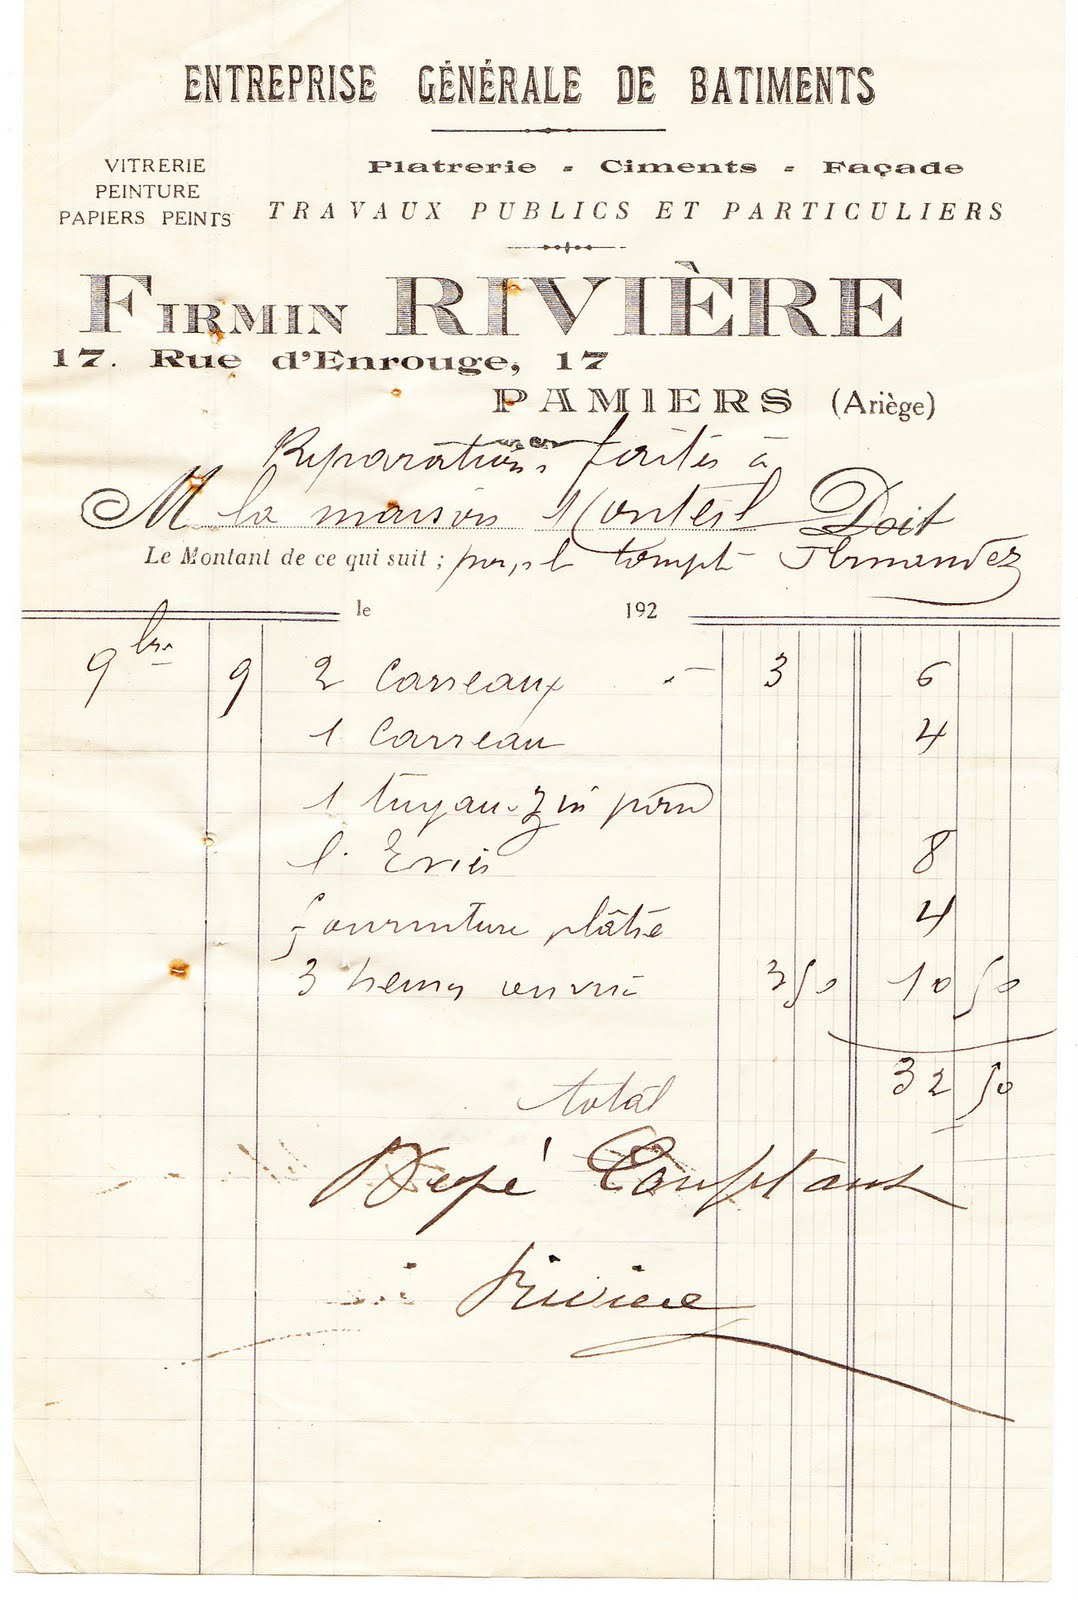 Gorgeous French Ephemera Image Old Invoice The Graphics Fairy - Invoice in french